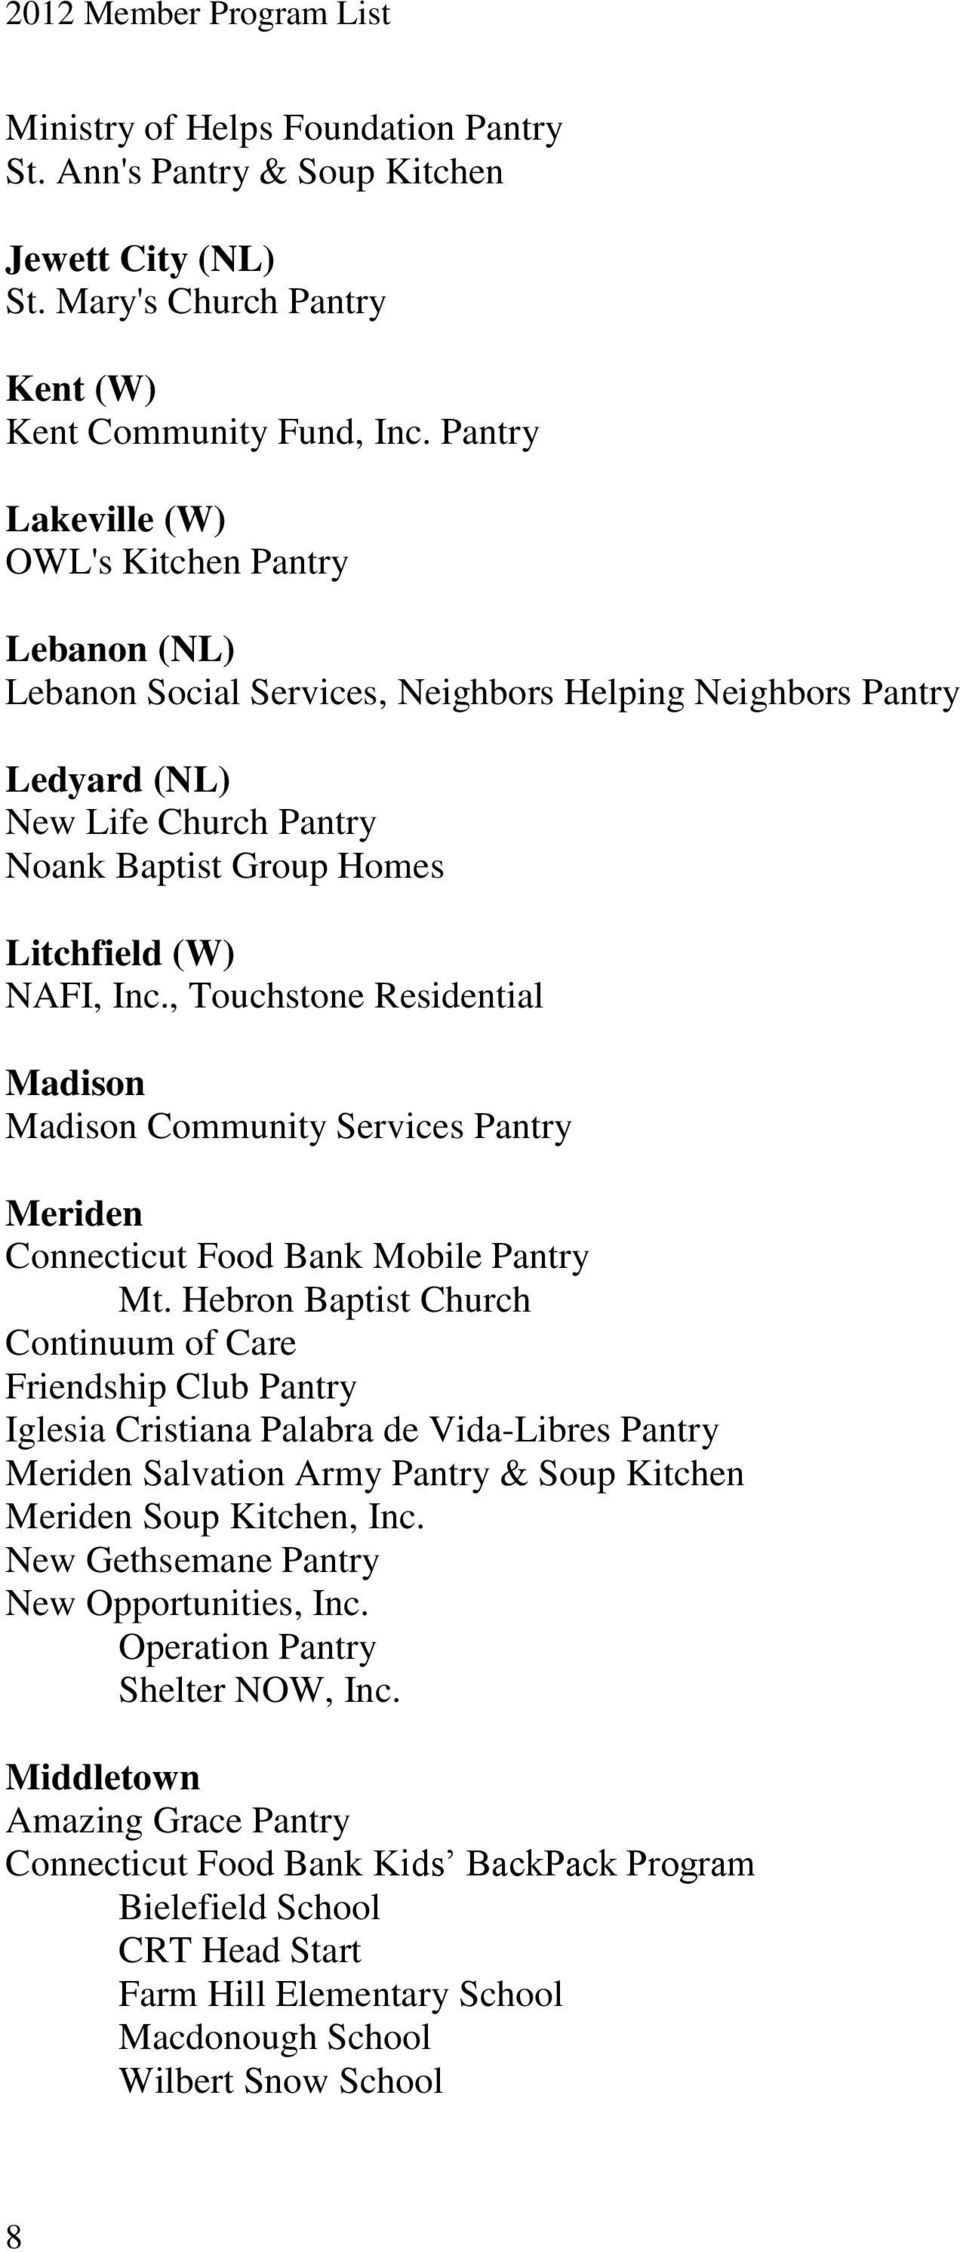 Inc., Touchstone Residential Madison Madison Community Services Pantry Meriden Mt.